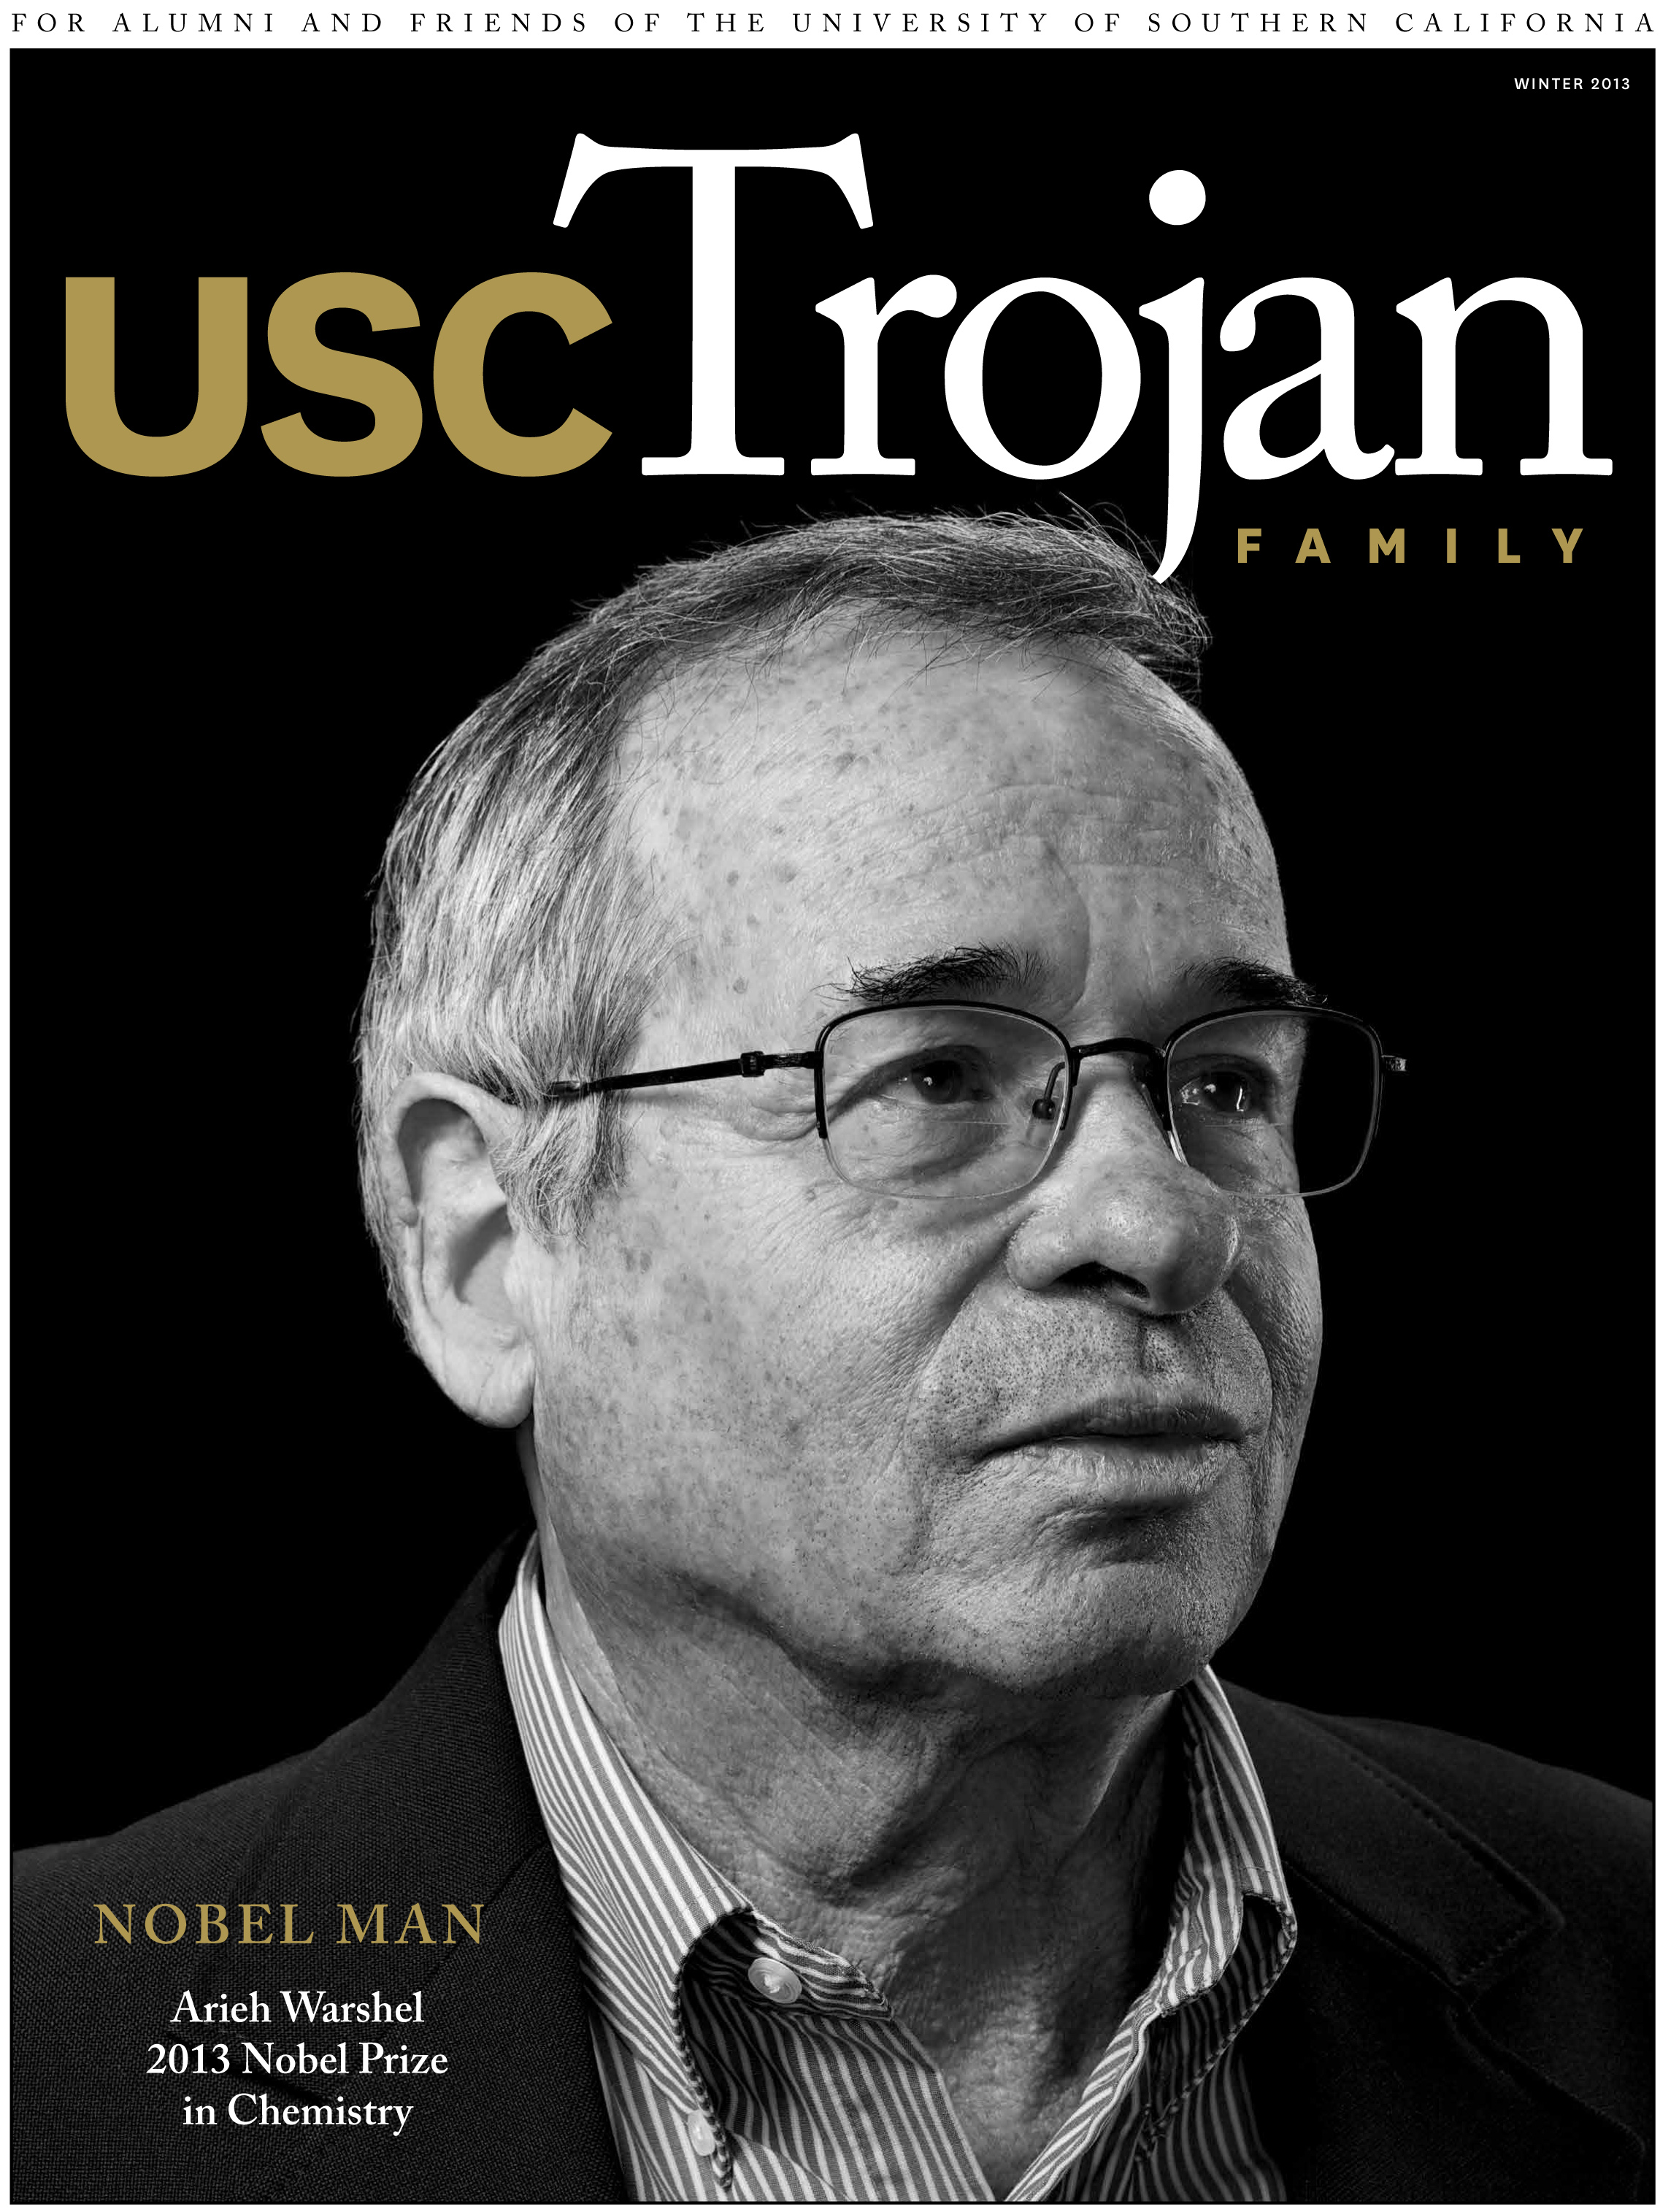 Winter 2013 Trojan Family Magazine cover